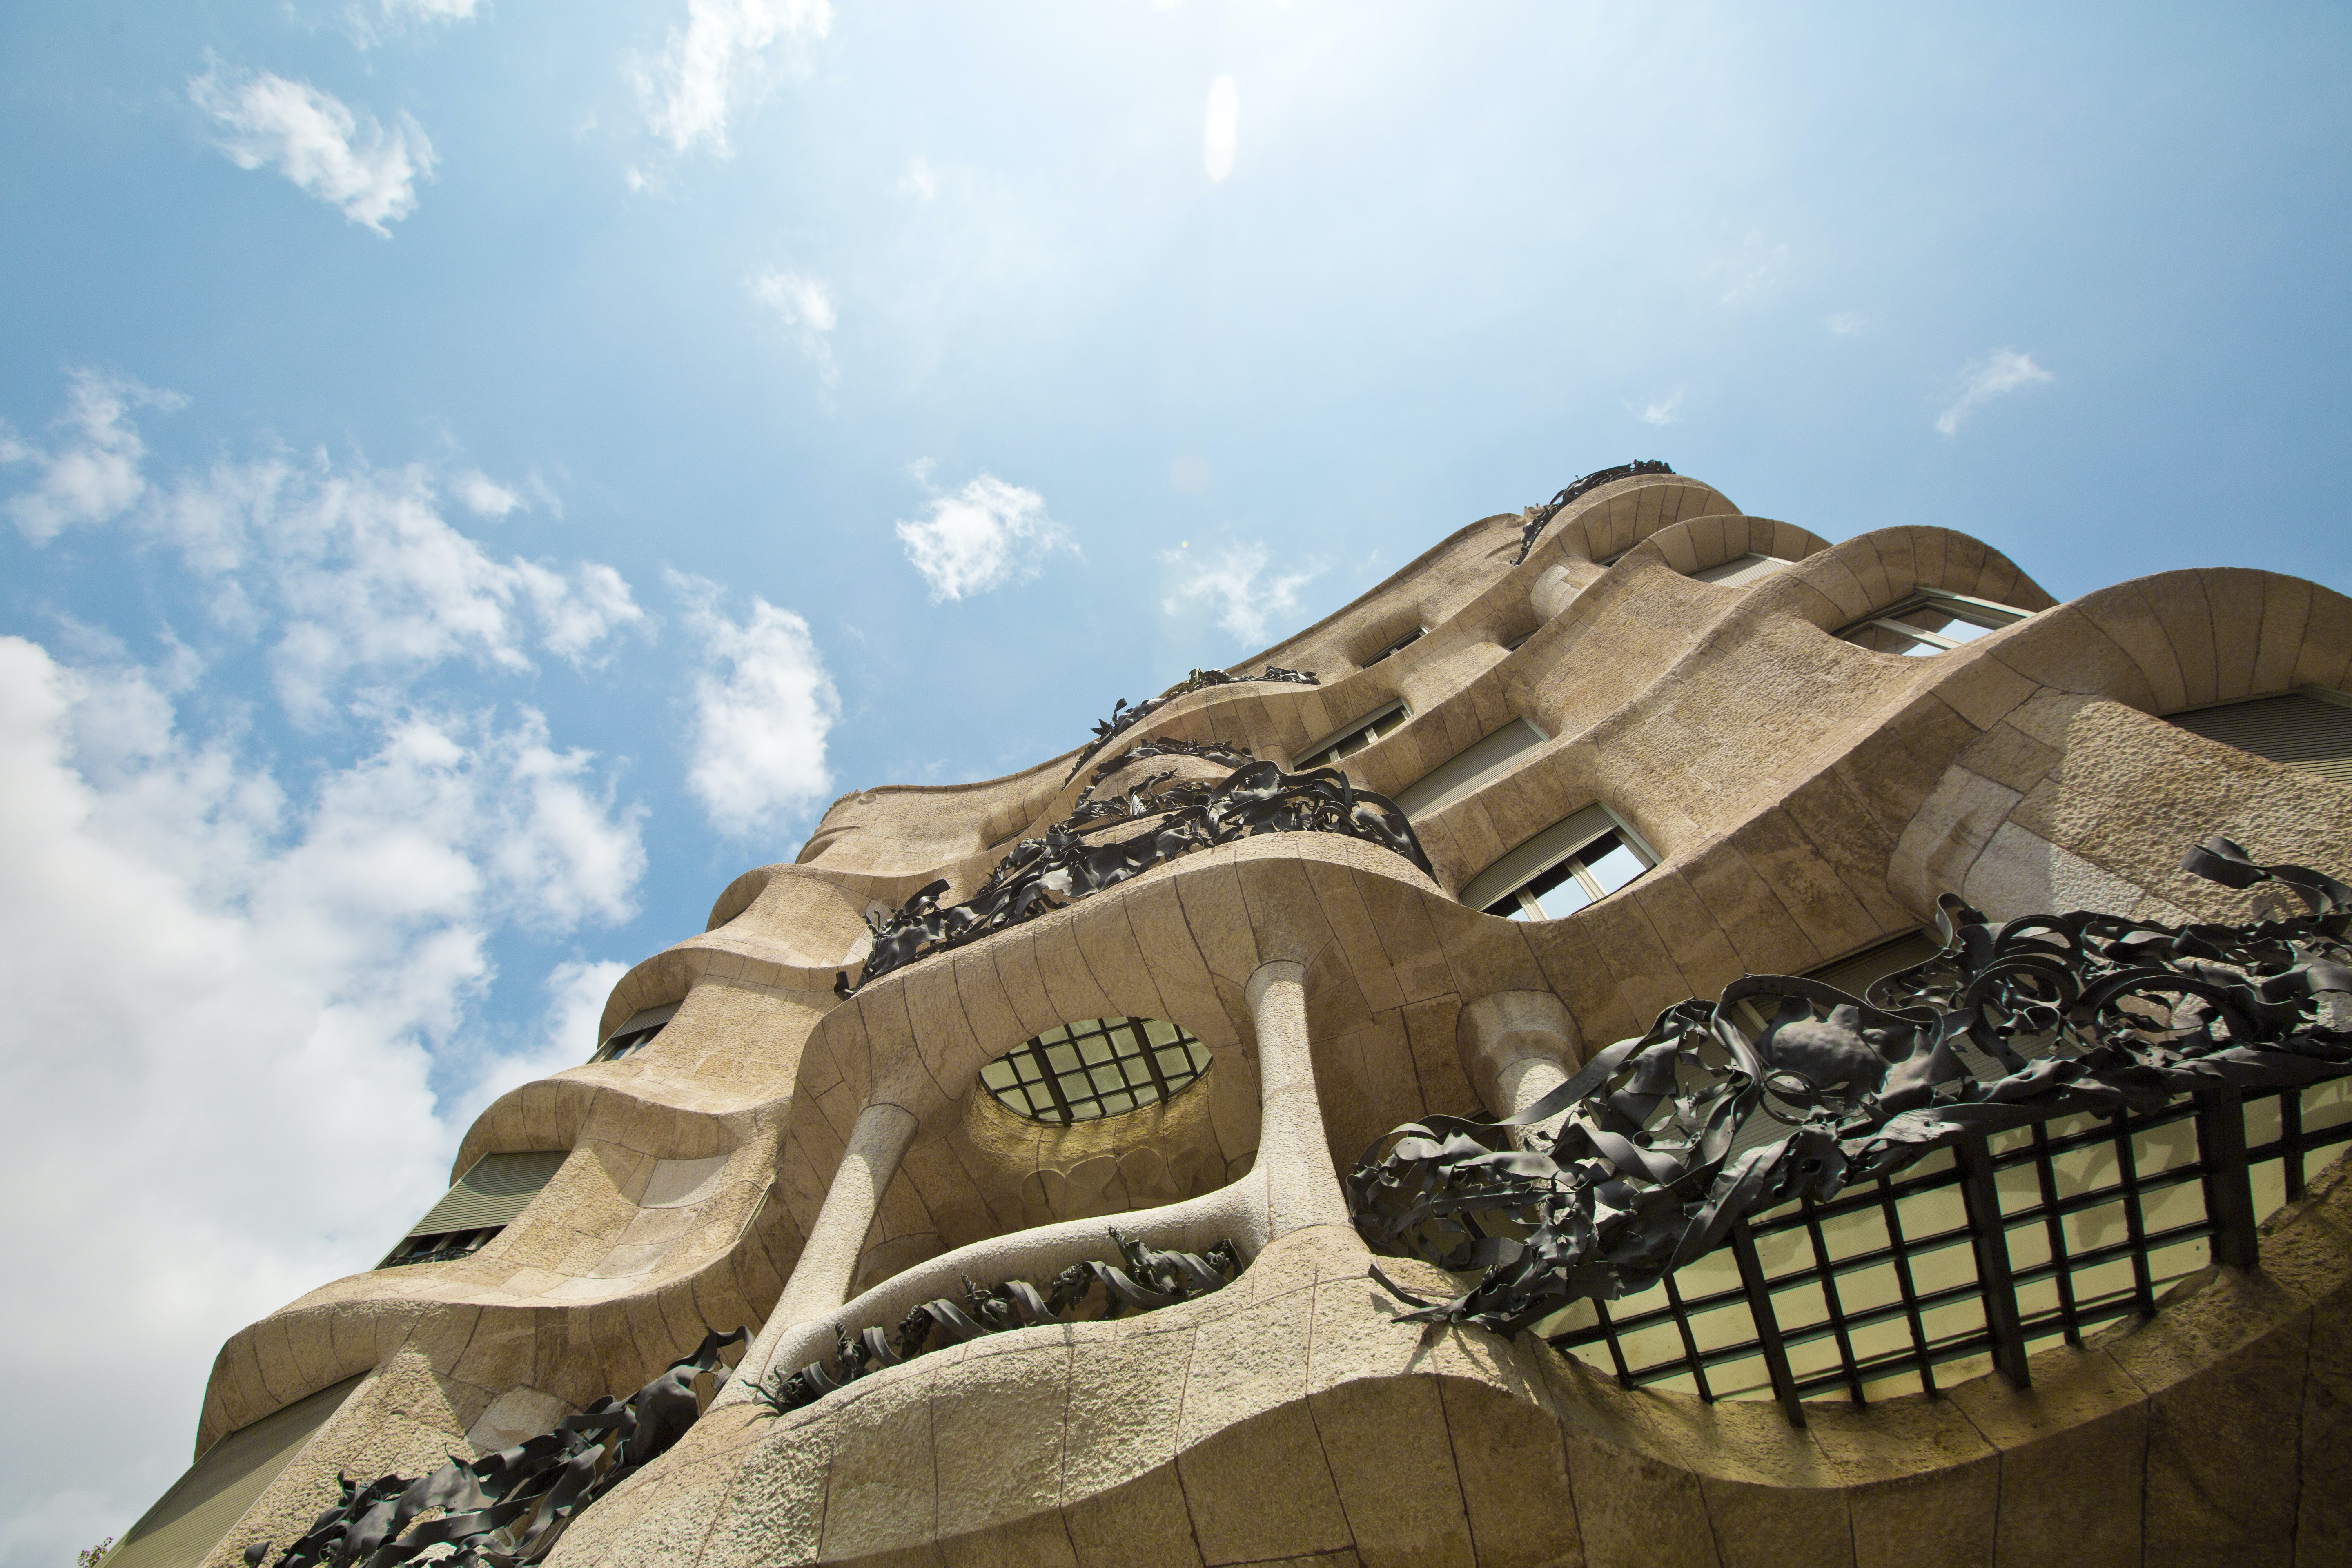 The facade of a building with sandstone architecture and blue sky with clouds in the background